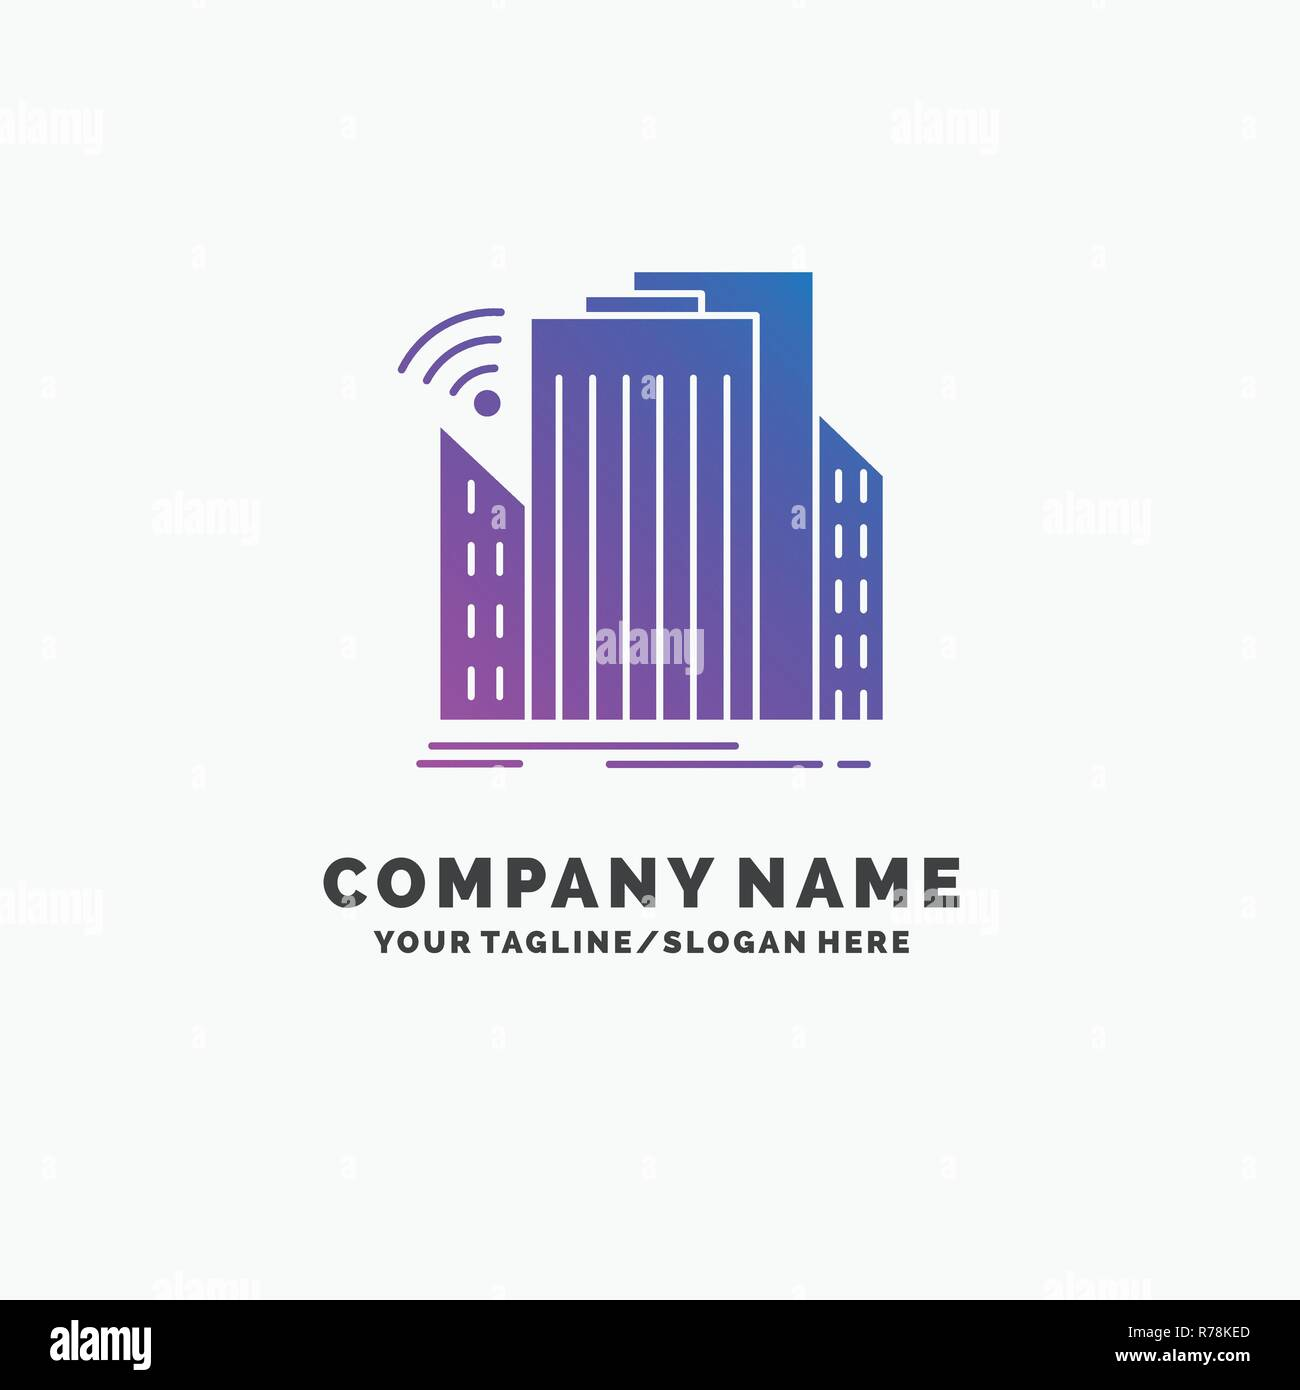 Buildings, city, sensor, smart, urban Purple Business Logo Template. Place for Tagline. - Stock Vector